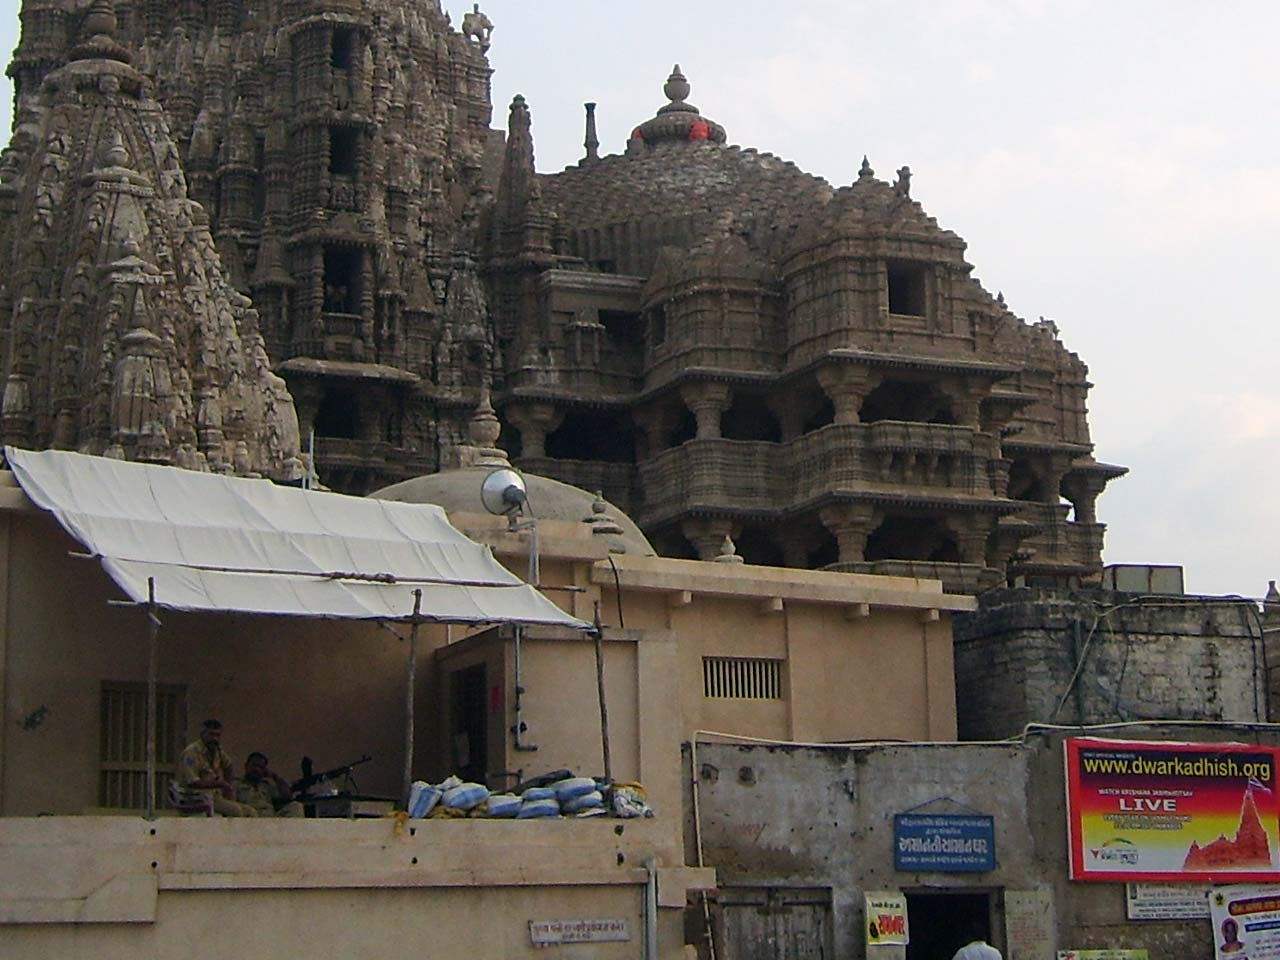 Dwarka India  city images : Dwarka – photo gallery, photos of India